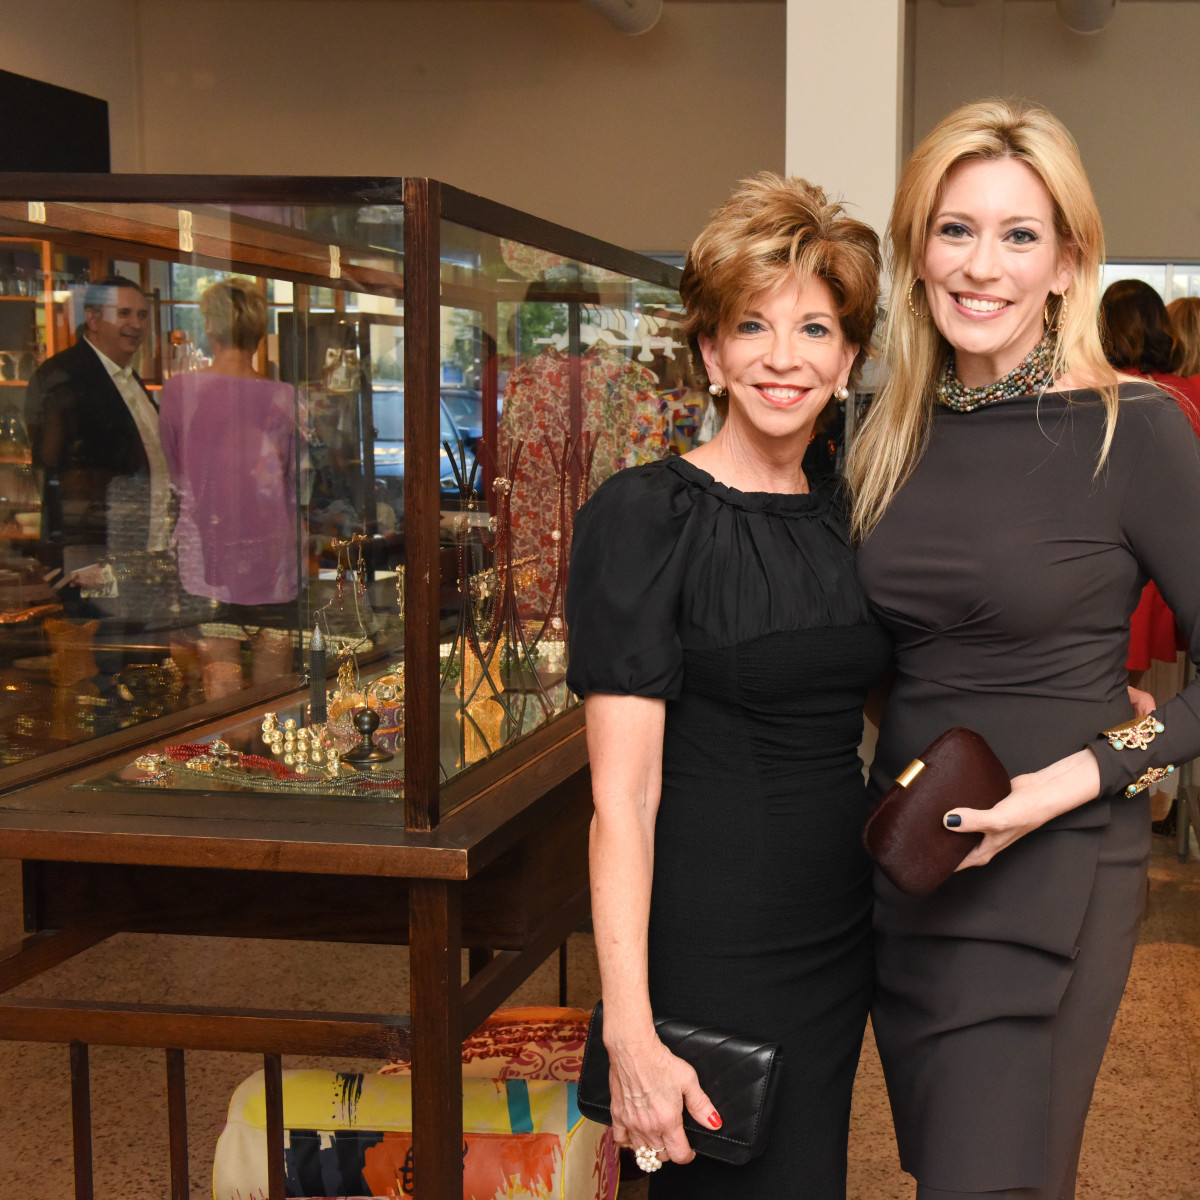 Vicki Rizzo and Mauri Oliver at Recipe for Success Dress for Dinner event with Lucy Sykes